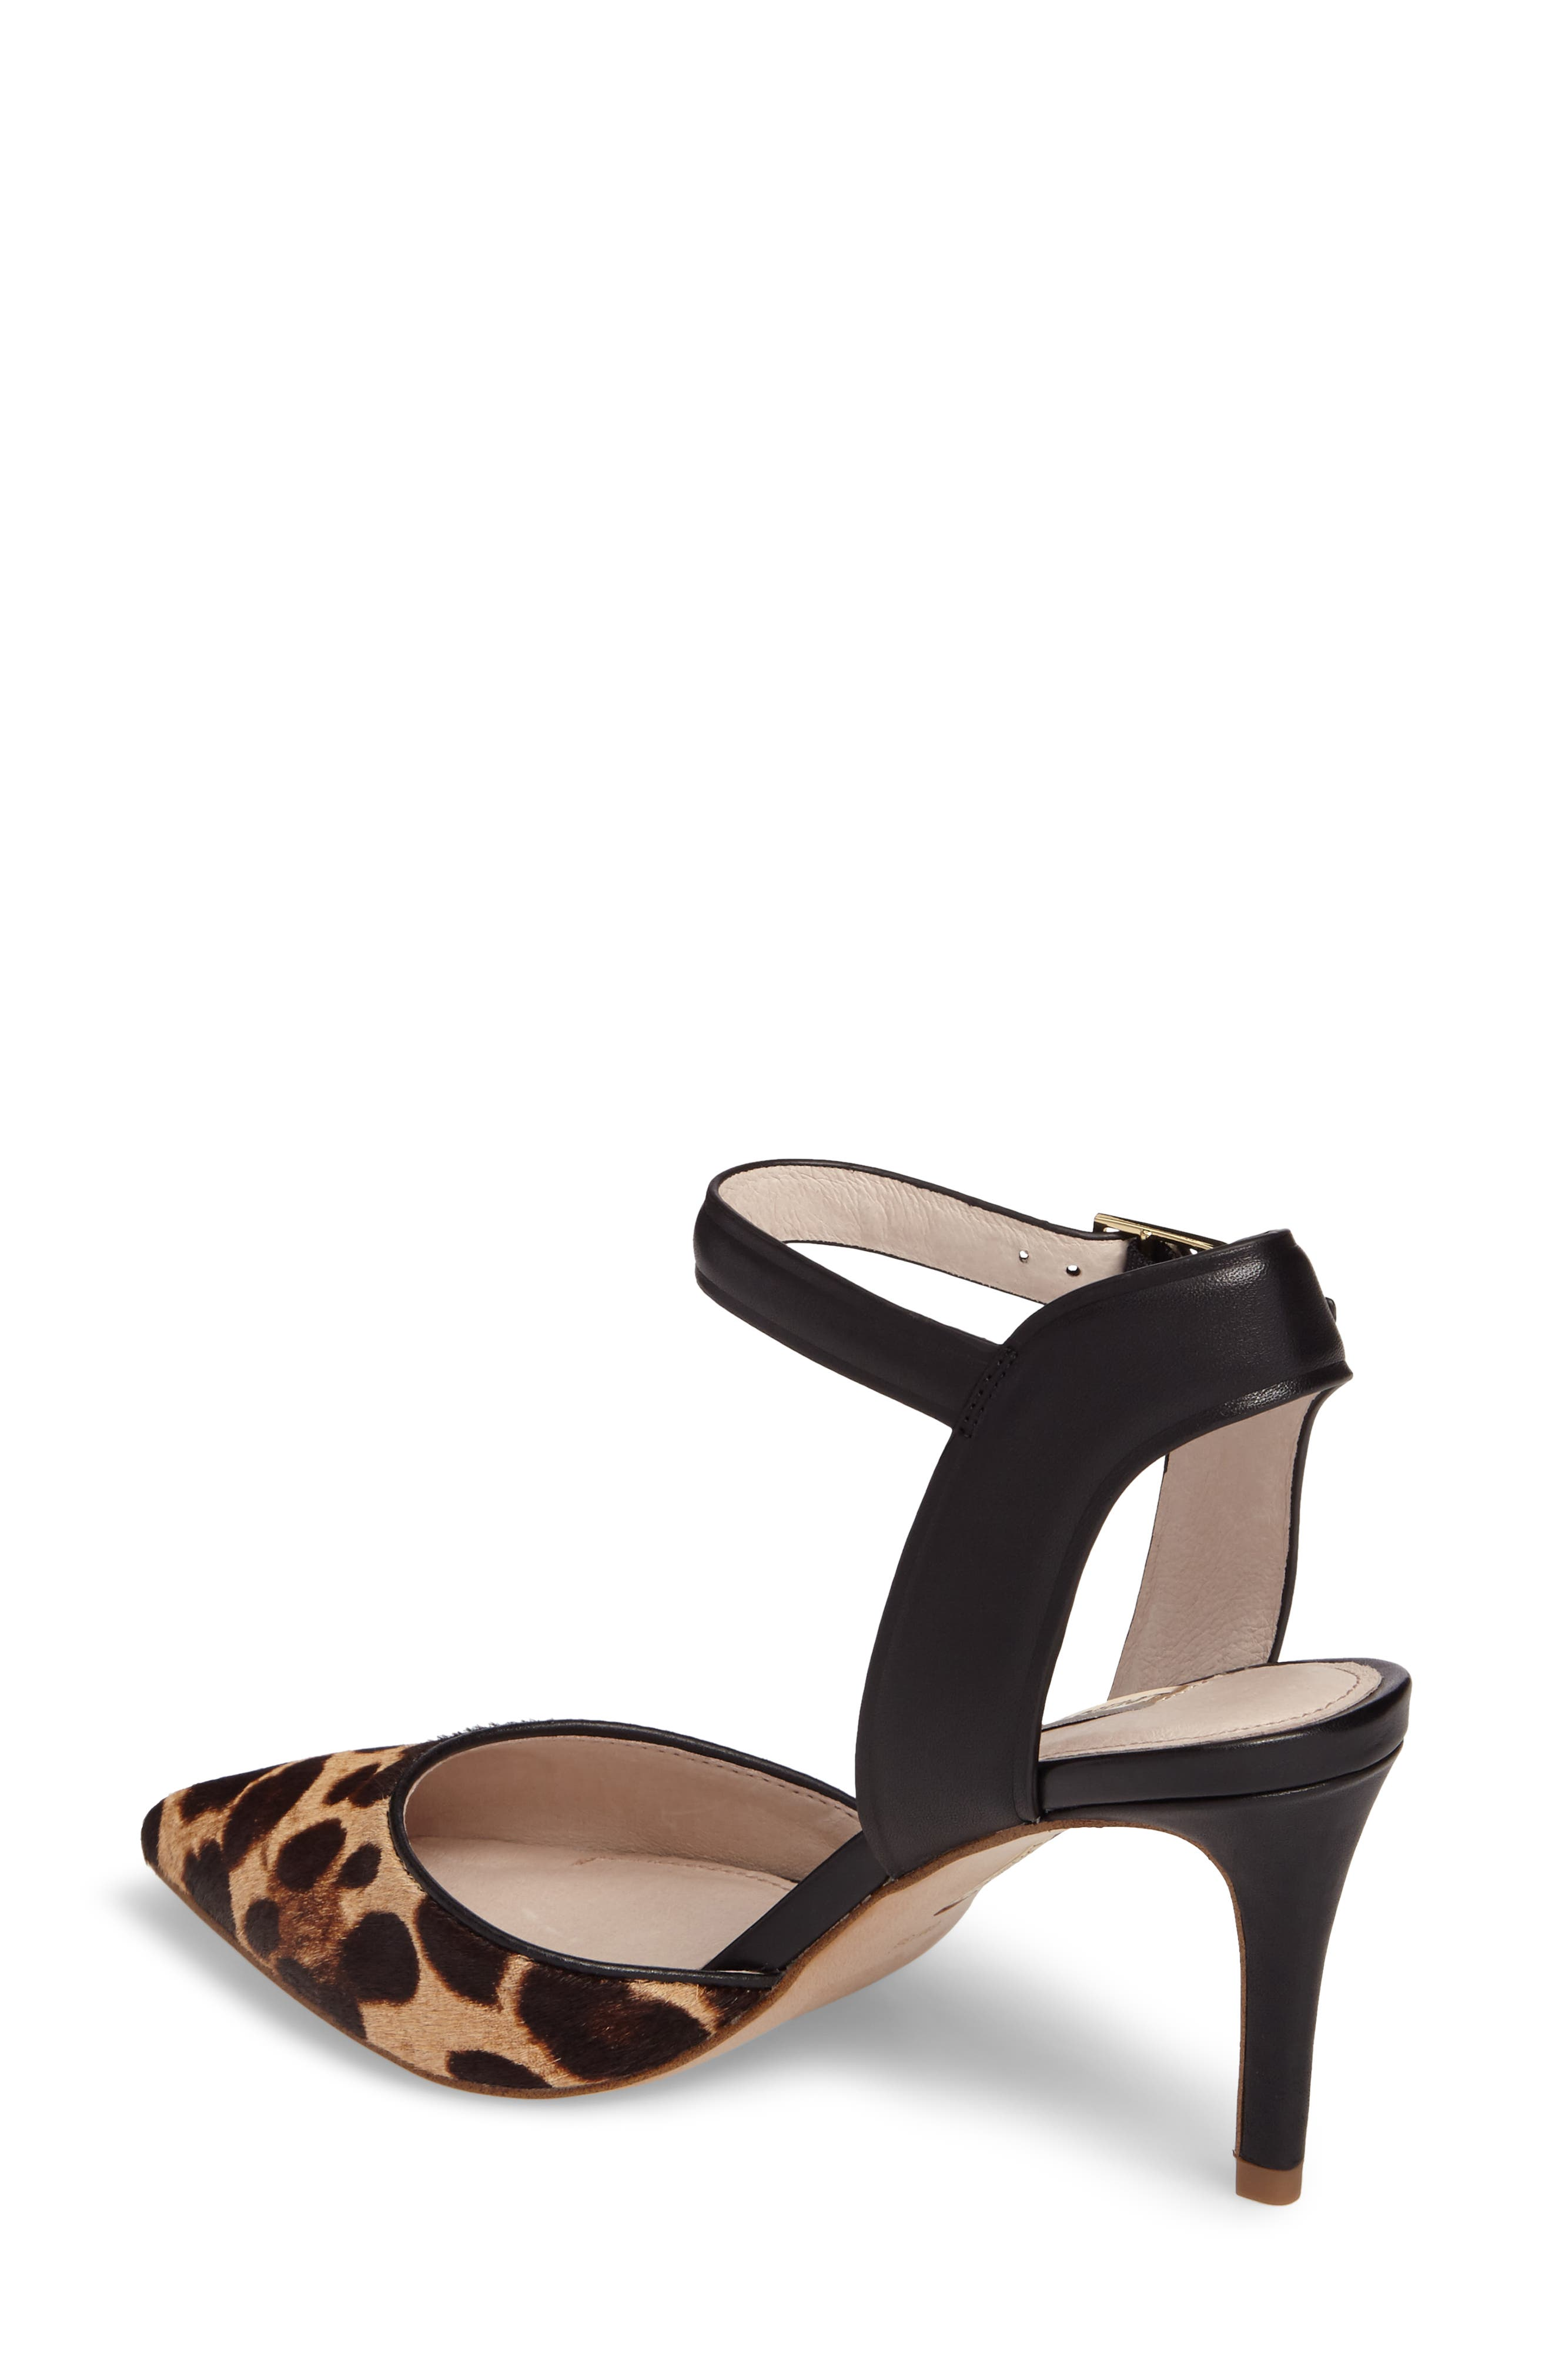 Kota Ankle Strap Pump,                             Alternate thumbnail 2, color,                             Leopard Print Calf Hair